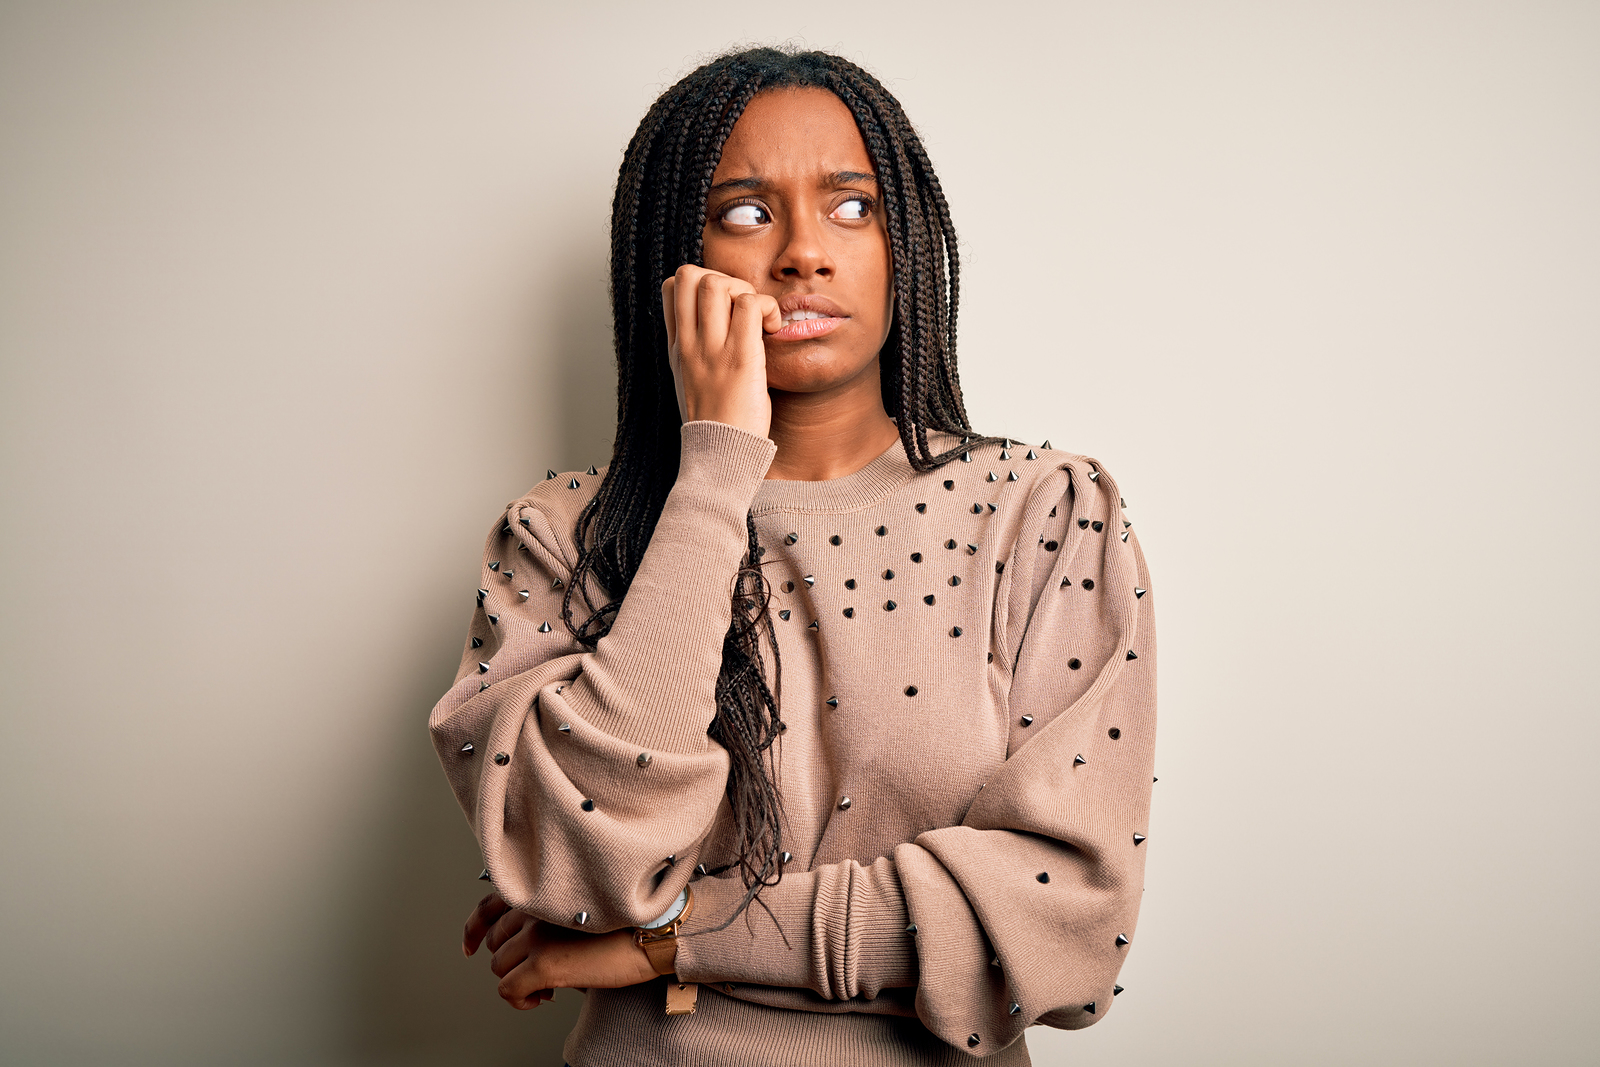 Black woman in beige sweater bitting nails and looking worried. When you're going through changes life is stressful. Whether good or bad, therapy for life transitions in Detroit, MI can help you breathe. Whether you need caregiver support, support for mom burnout, or relationship therapy for singles. We are here to help!